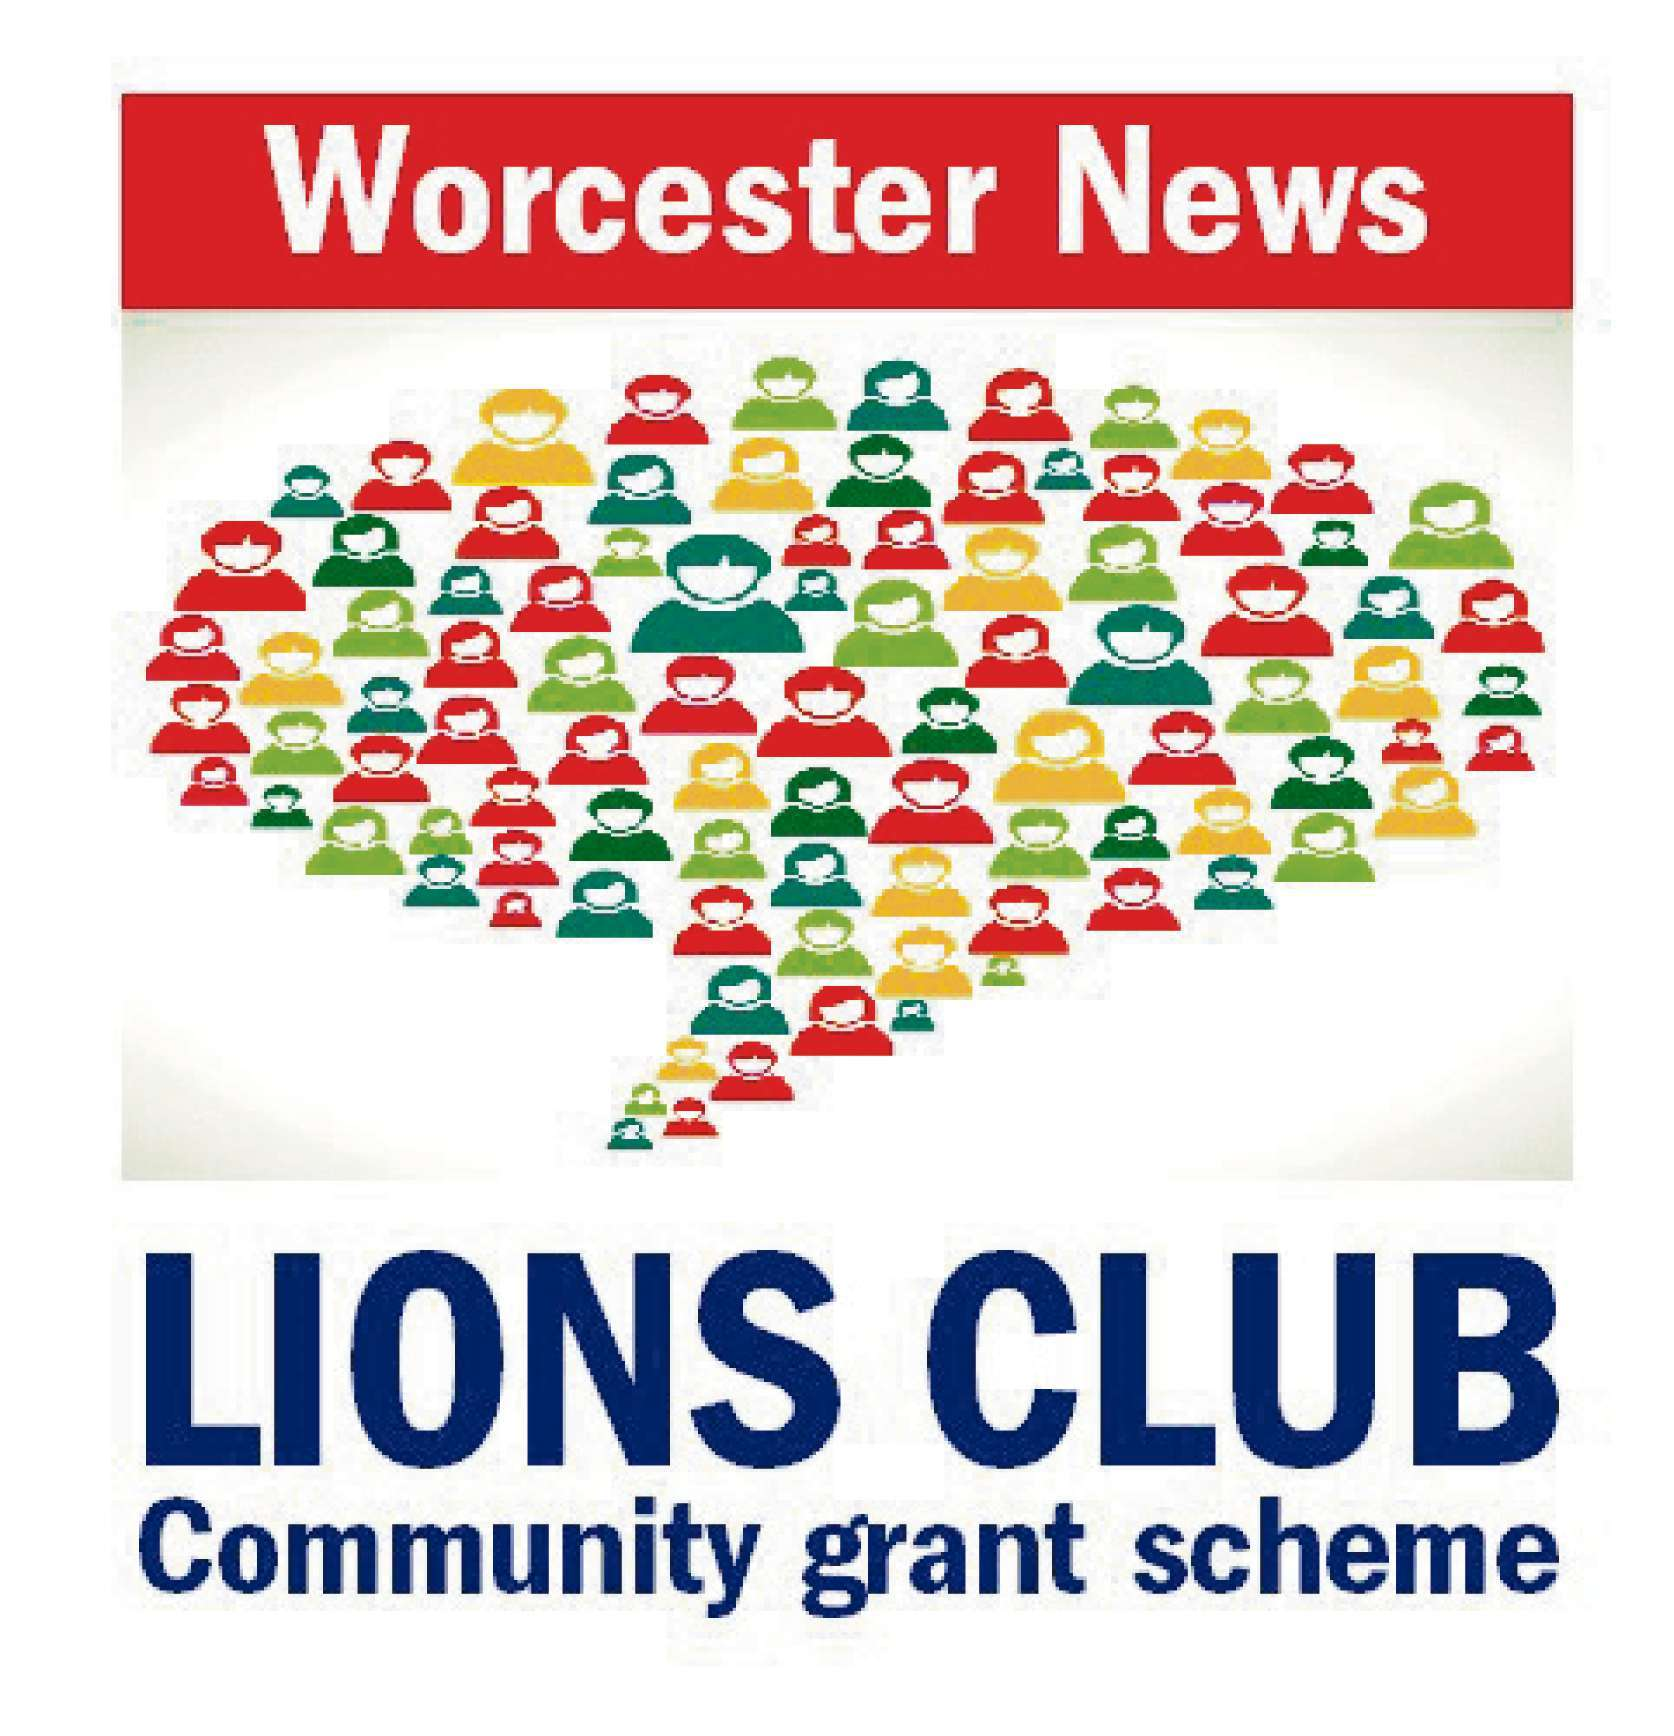 Worcester News Lions Club Grant Logo (6393062)